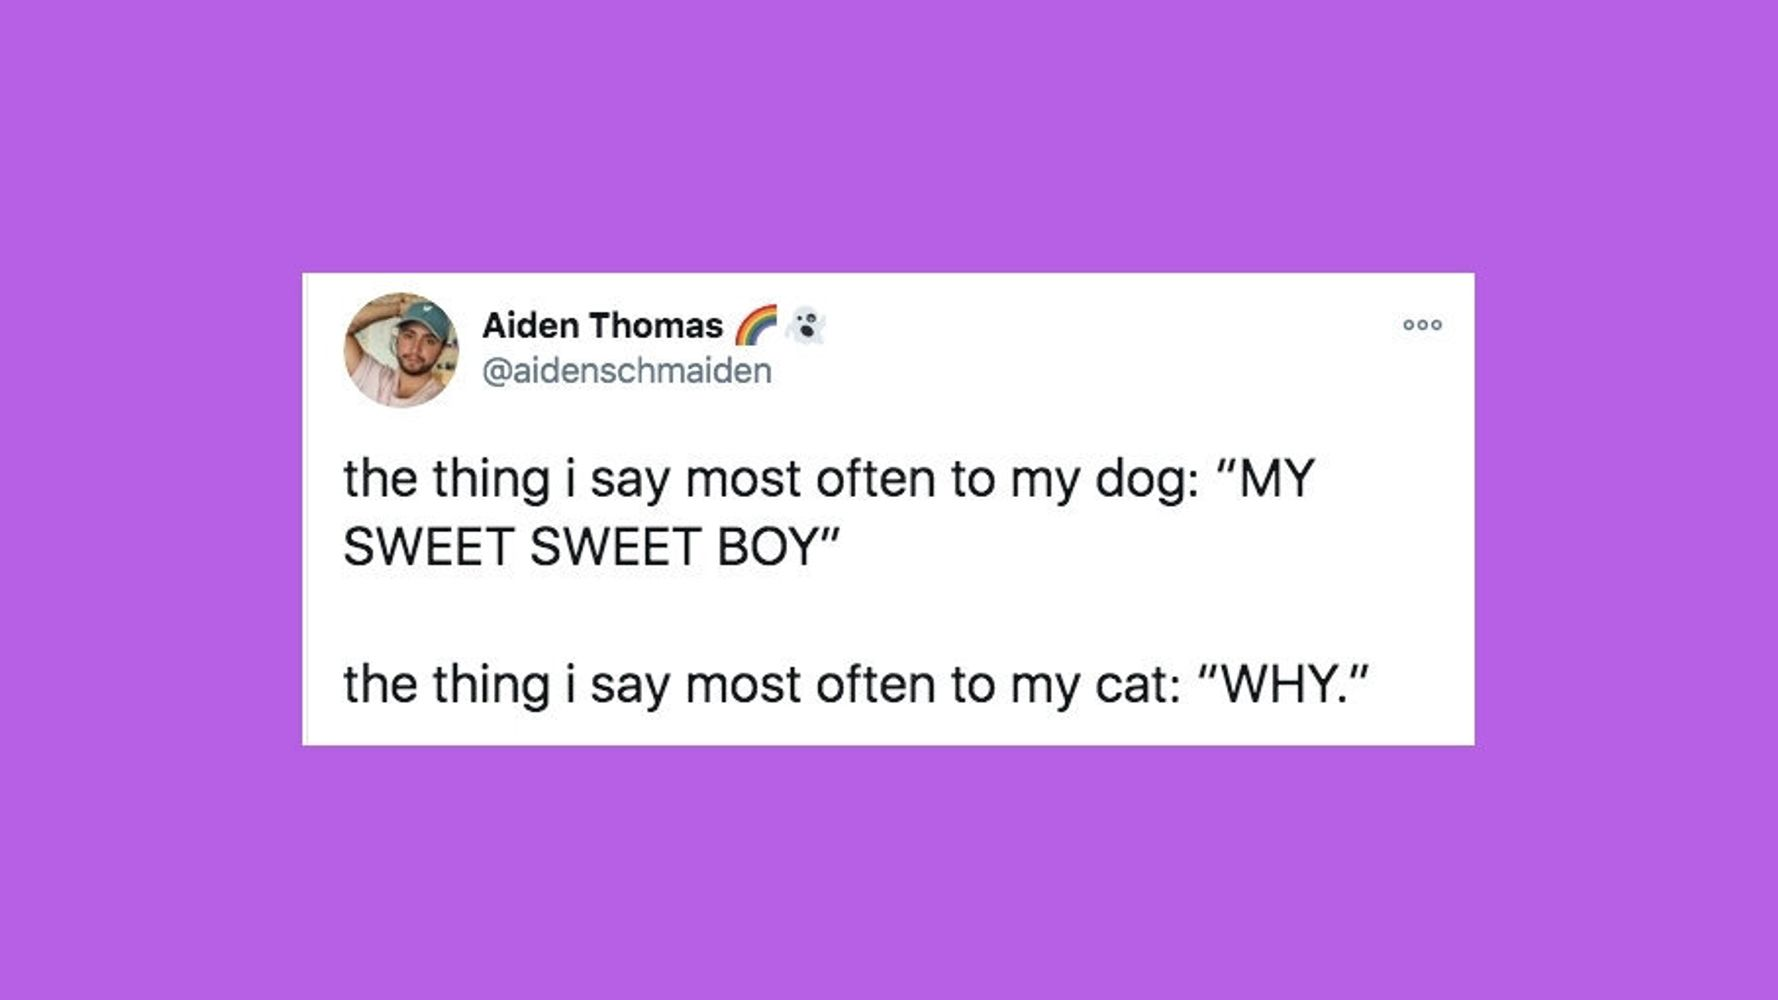 31 Of The Funniest Tweets About Cats And Dogs This Week (Nov. 7-13)